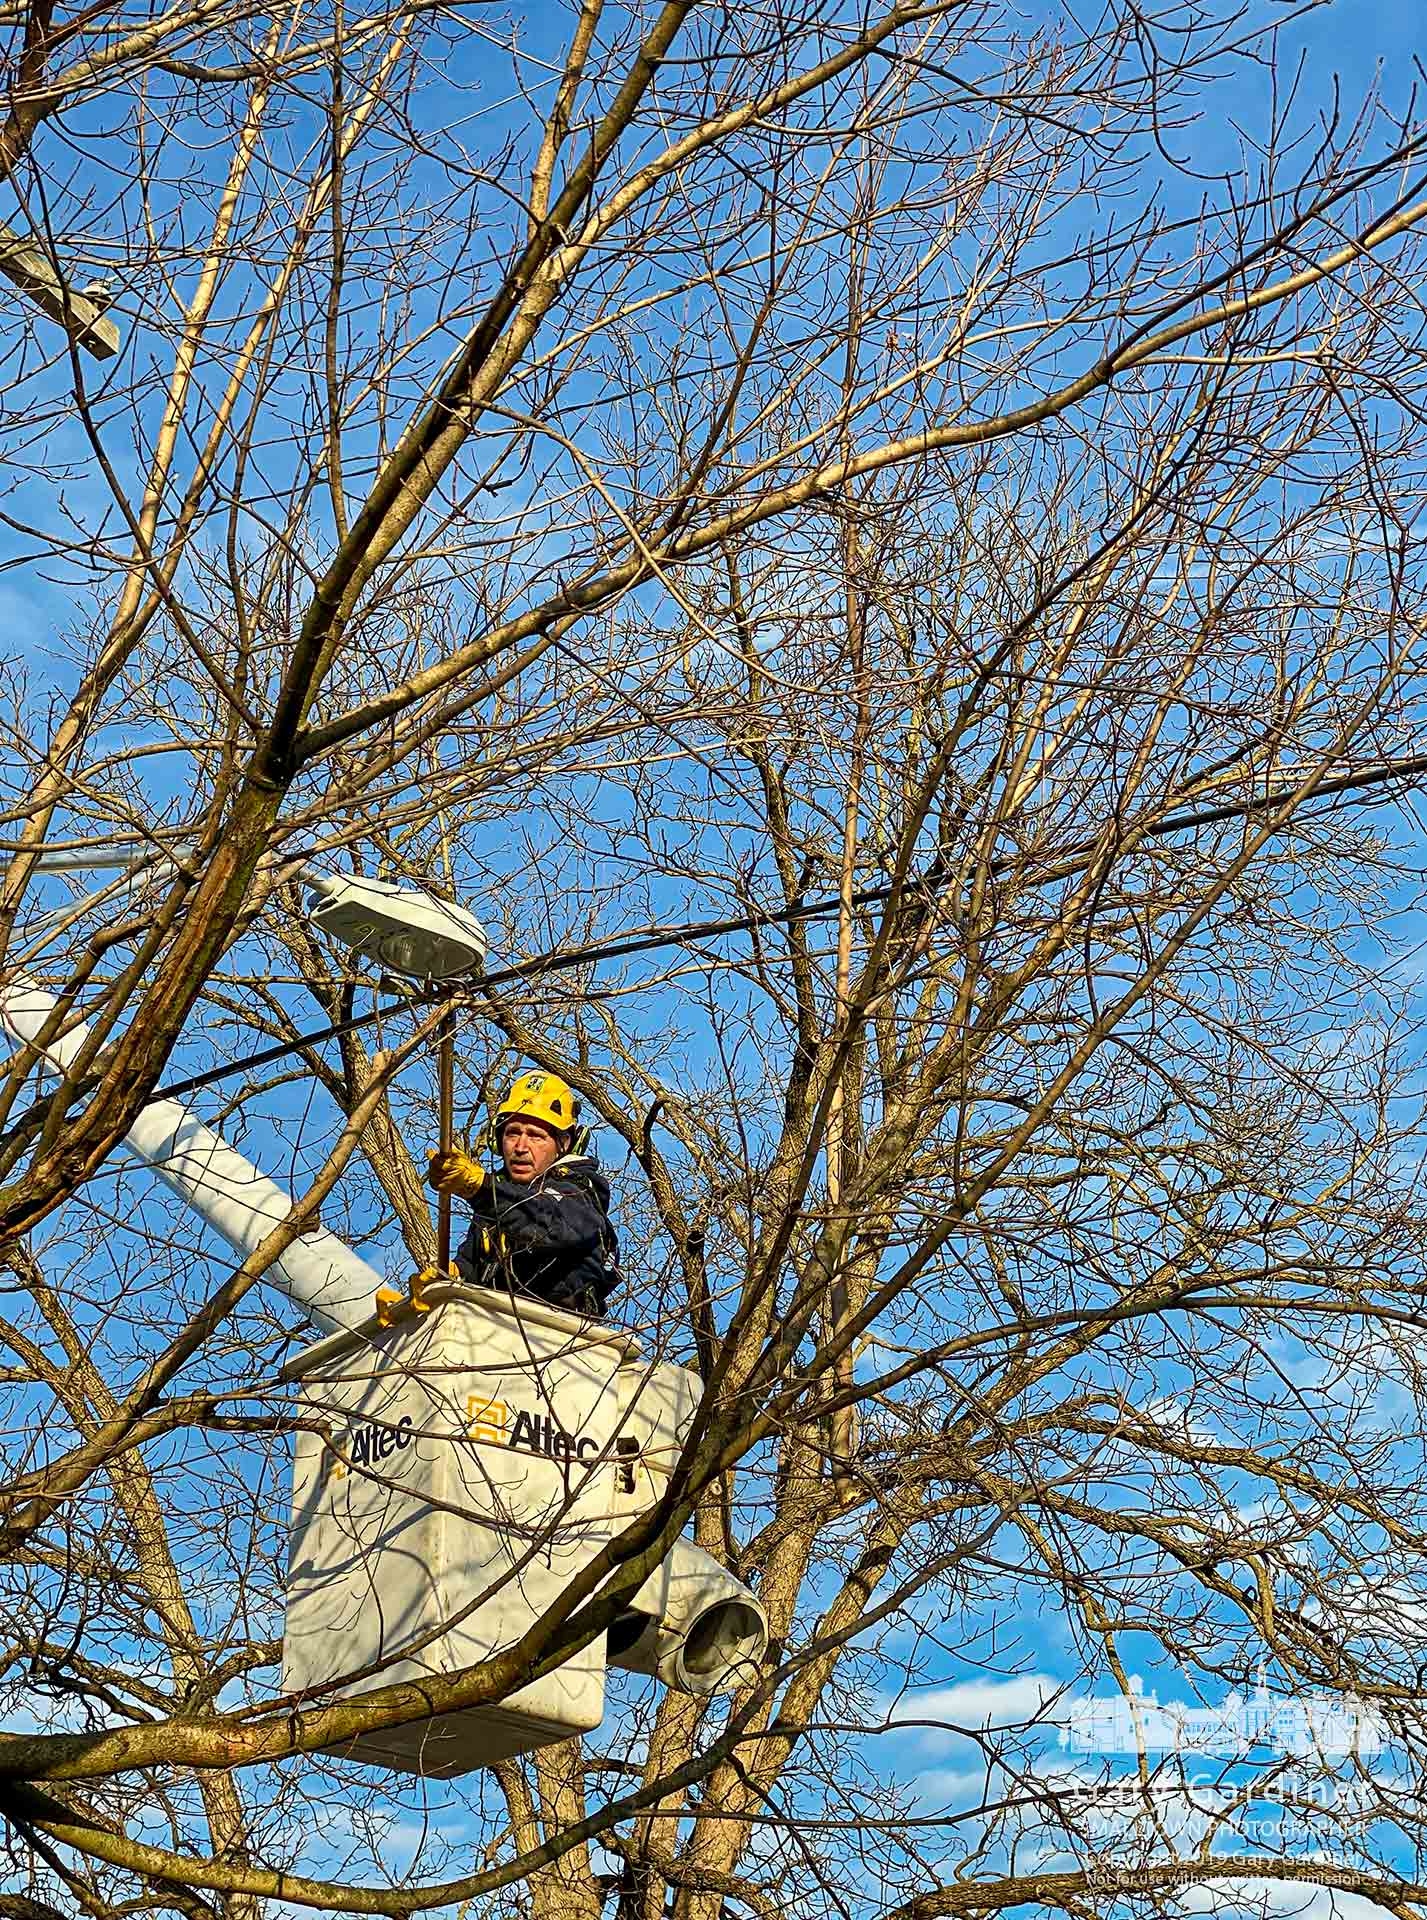 A Westerville City Electric worker trims errant branches growing into power lines along an alley in Uptown. My Final Photo for Dec. 26, 2019.